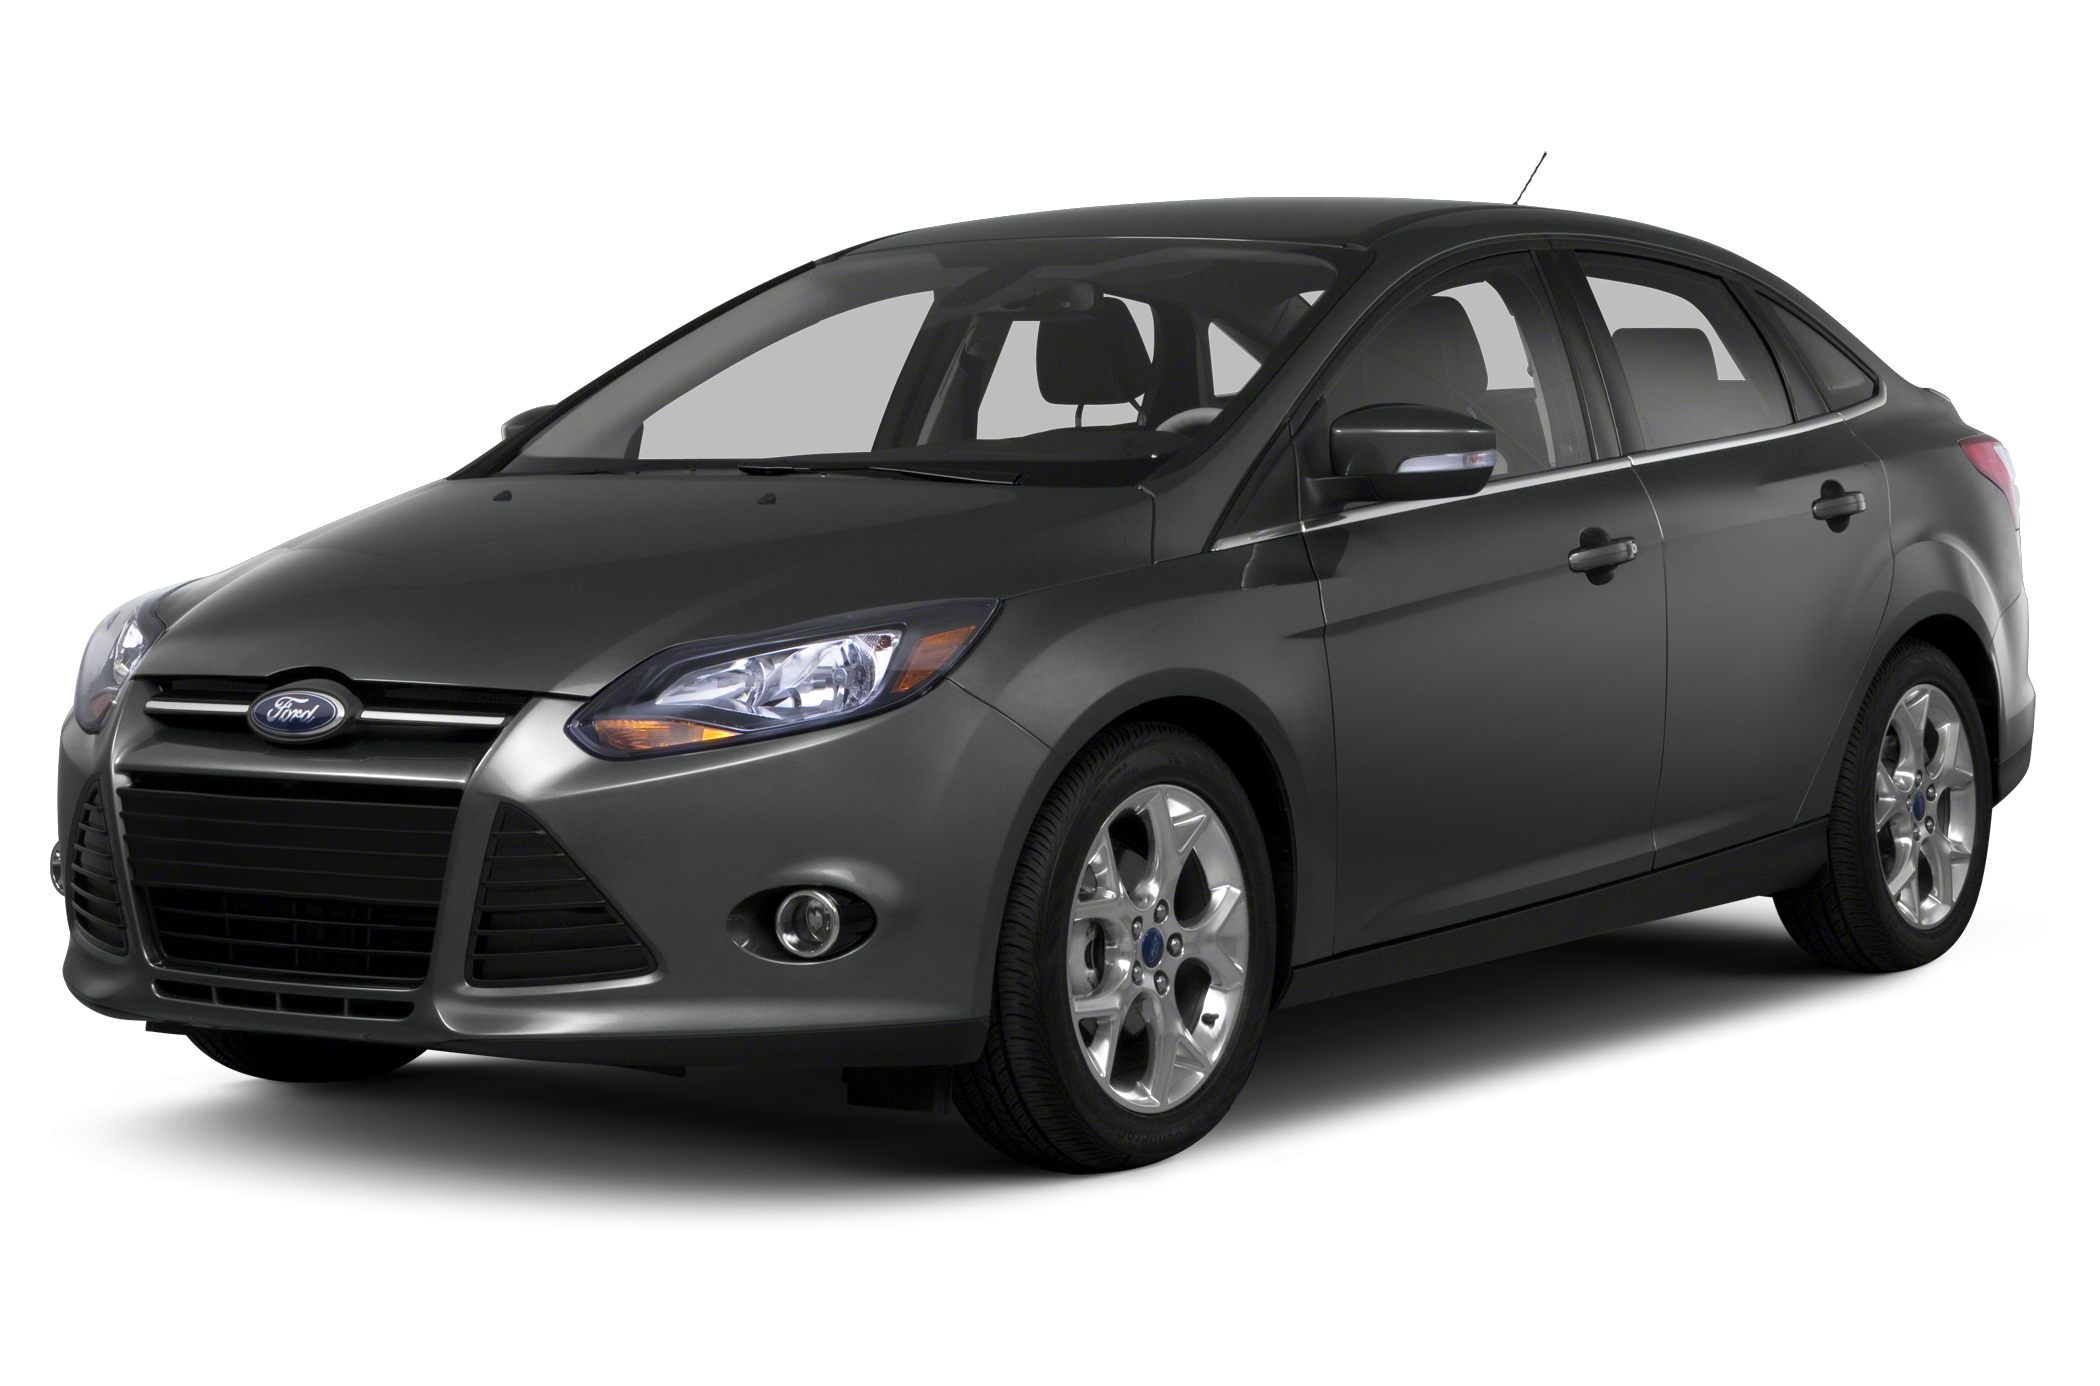 2013 Ford Focus SE Hatchback for sale in Dallas for $11,925 with 49,920 miles